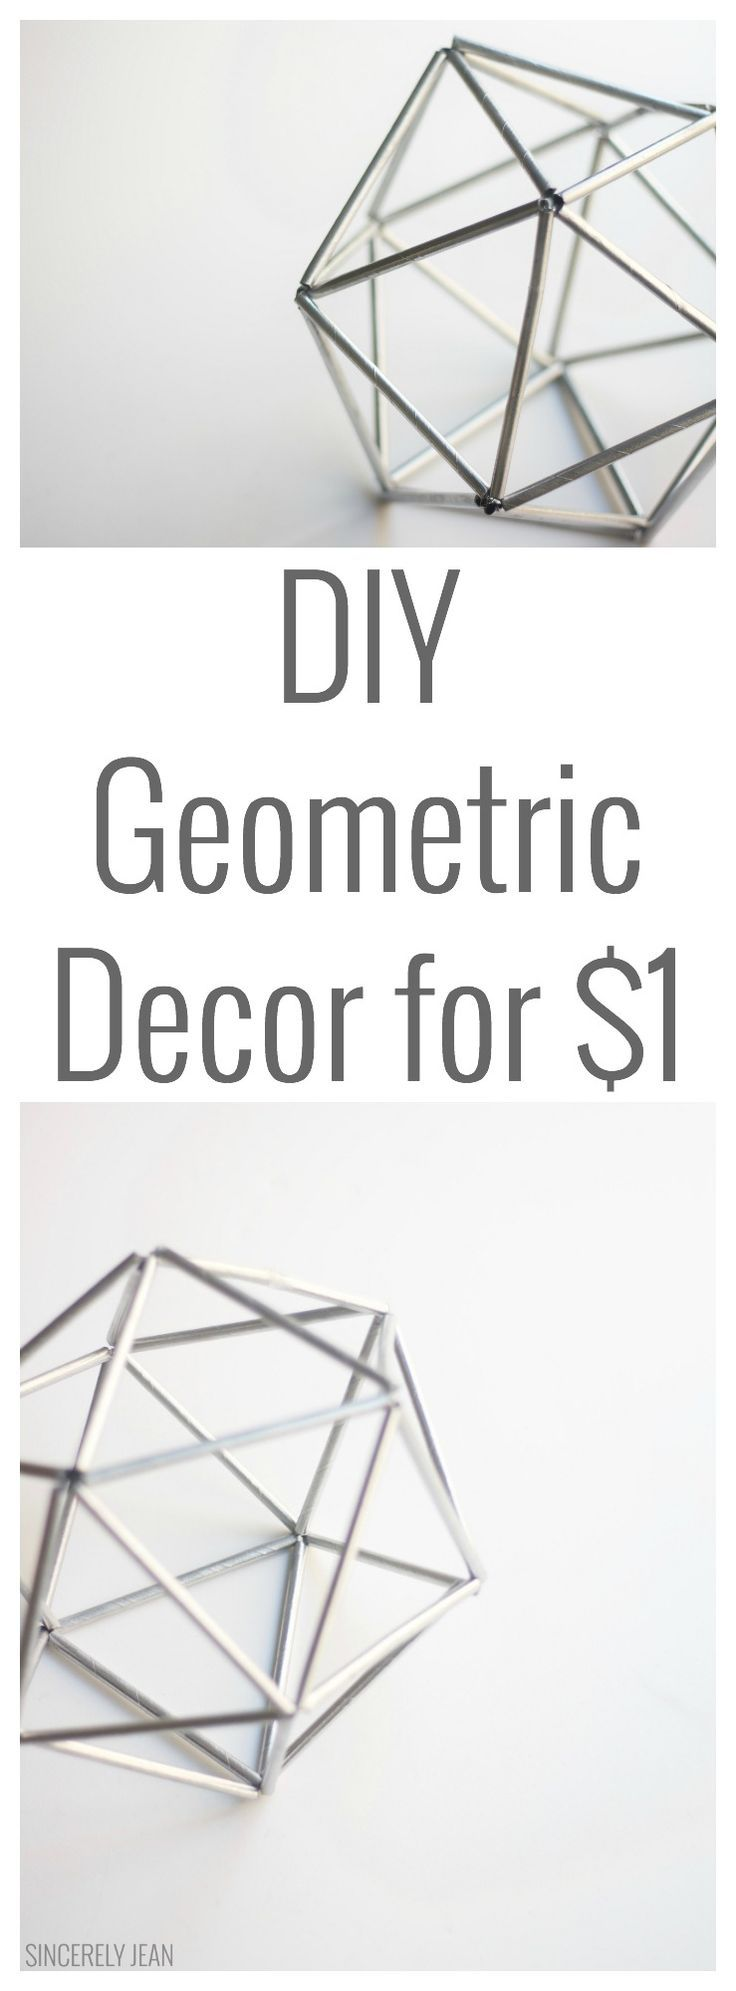 DIY Geometric Decor for $1